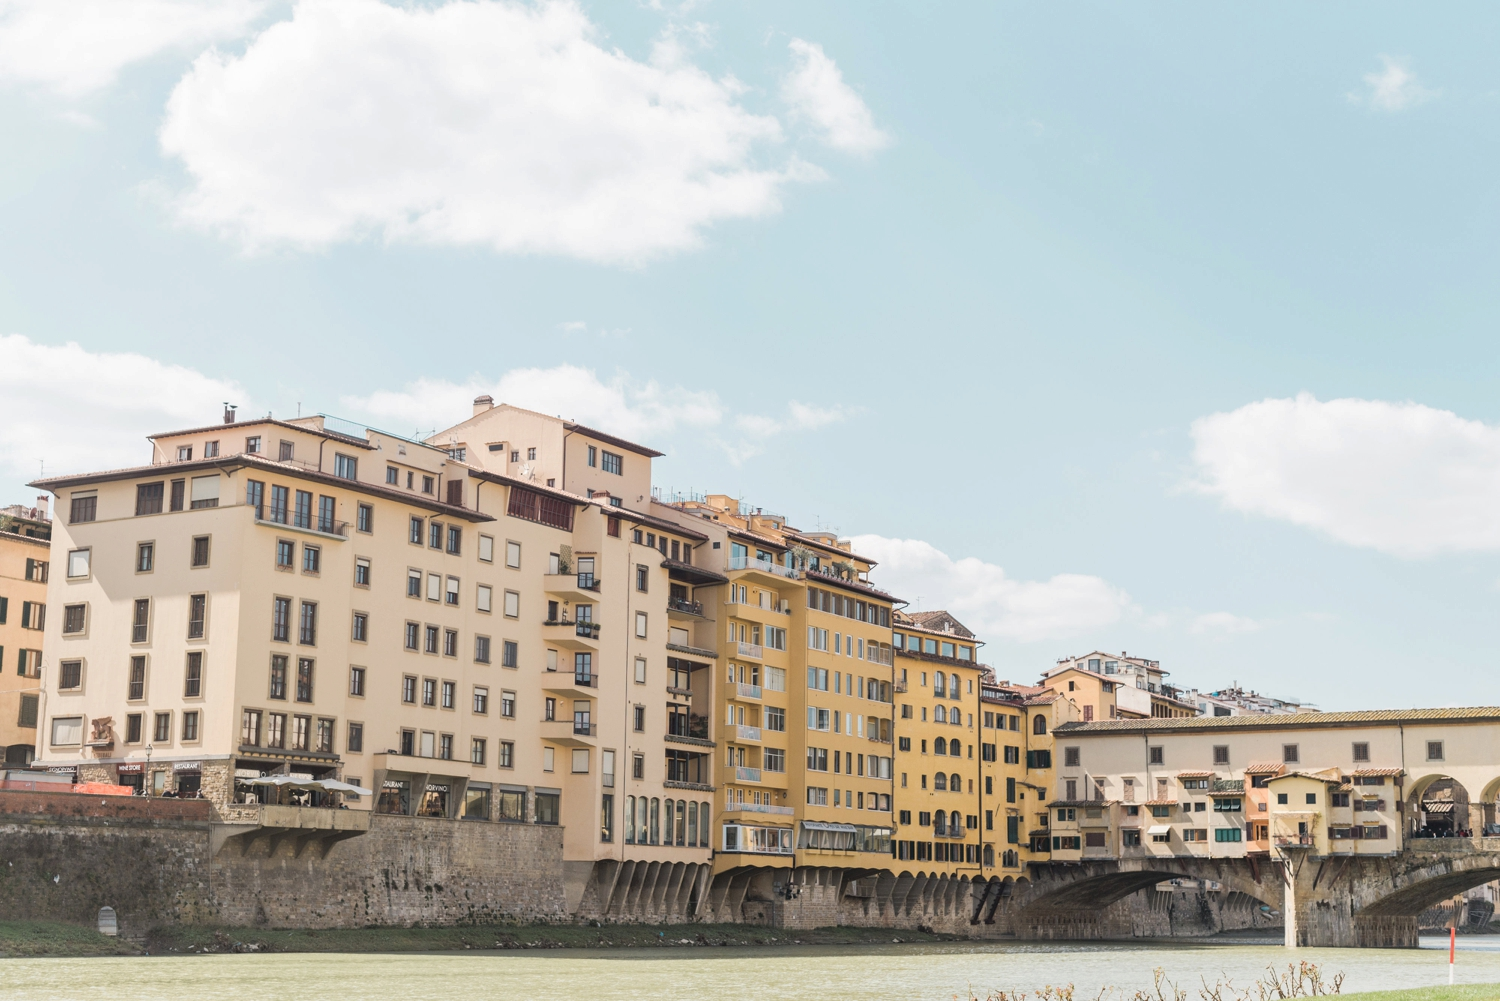 florence-tuscany-italy-wedding-photographer-destination-photographer-fine-art-film-wedding_4885.jpg